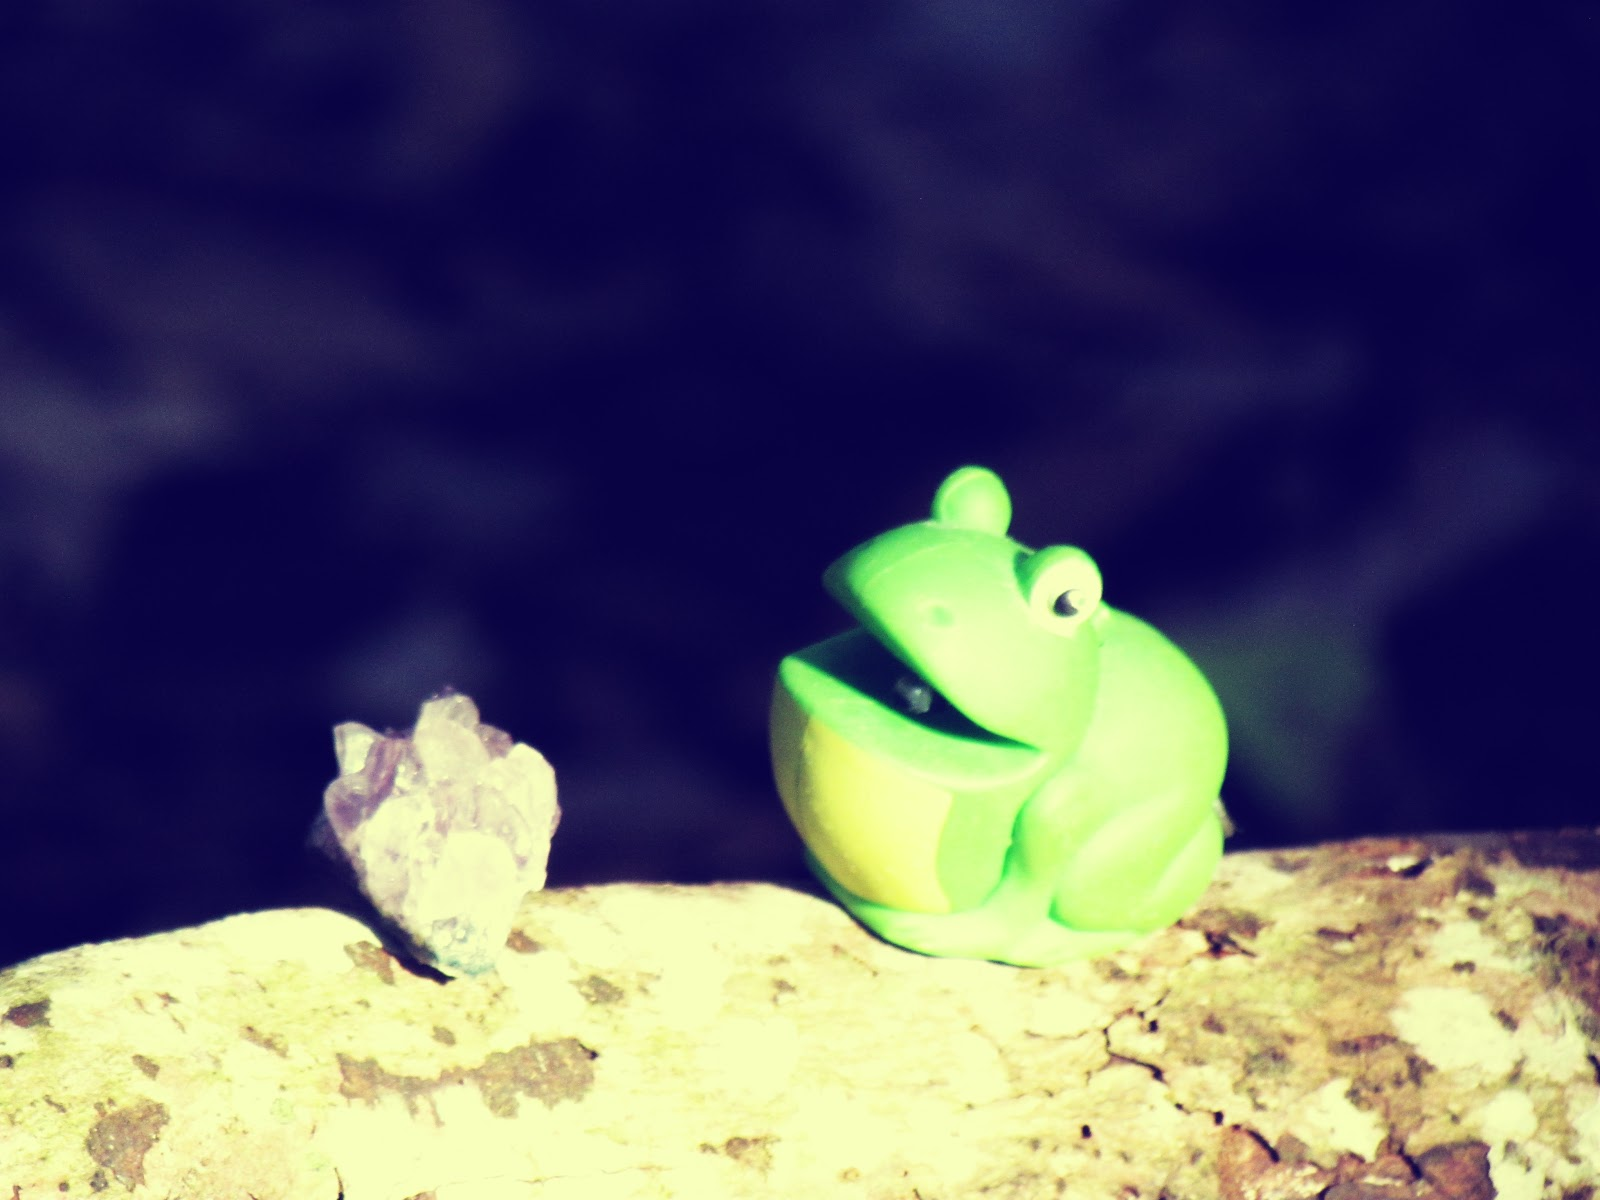 A purple amethyst gemstone on a wooden log being chased by a green toy flashlight frog: girls novelty toys